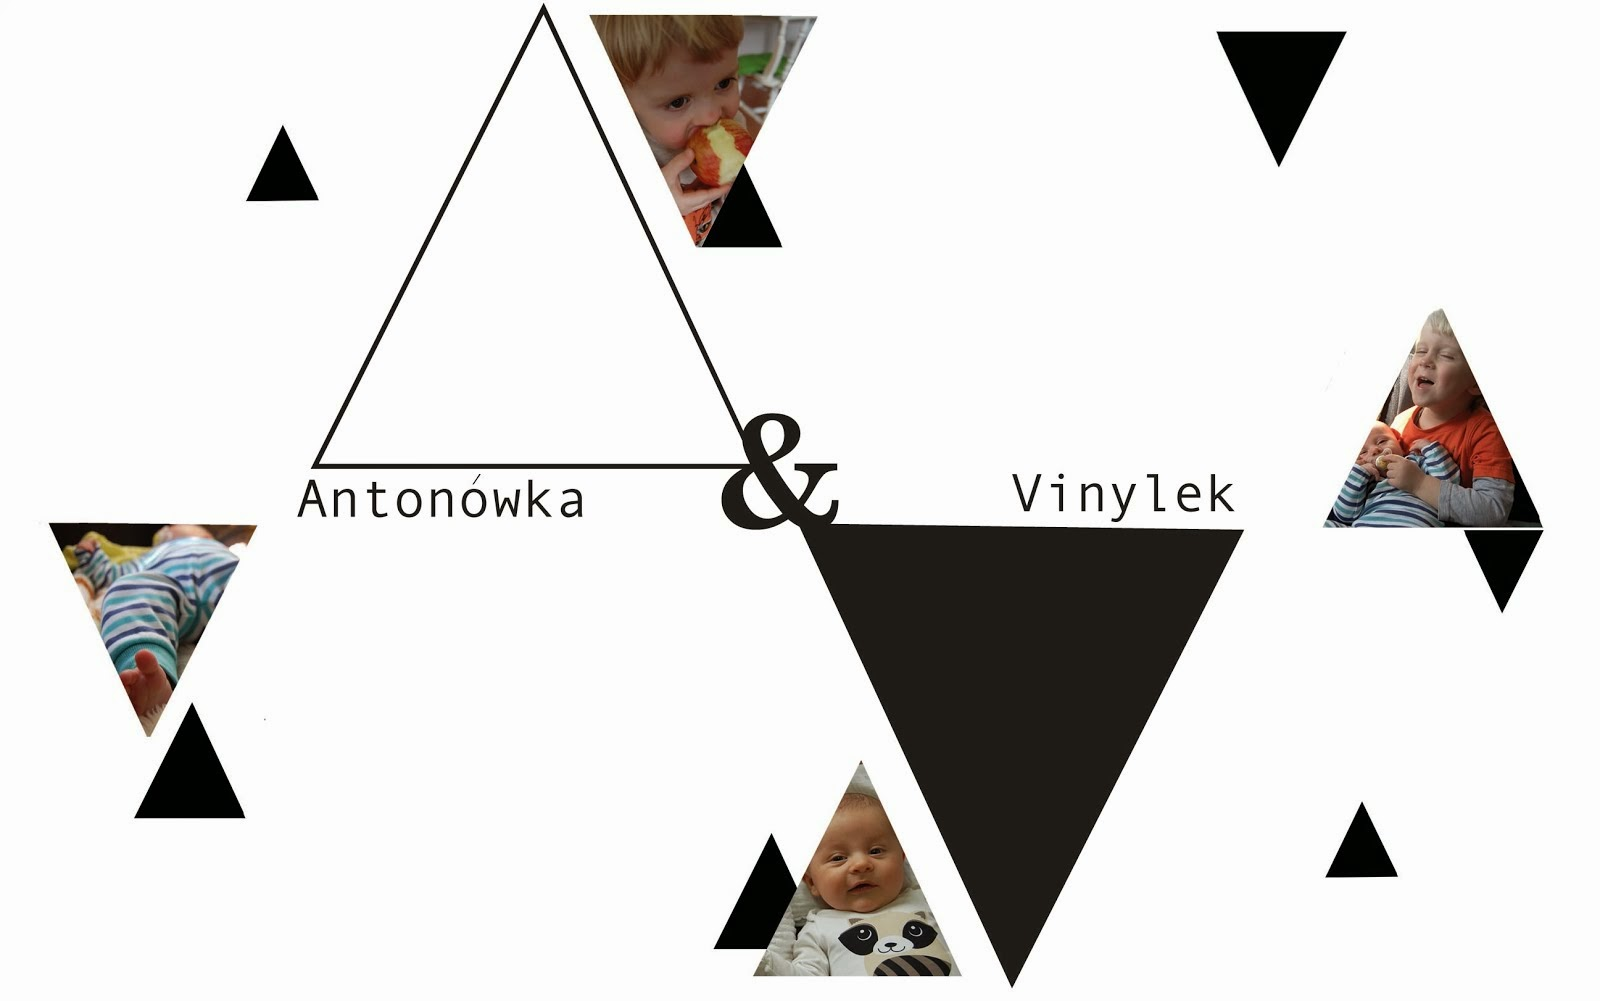 Antonowka & Vinylek